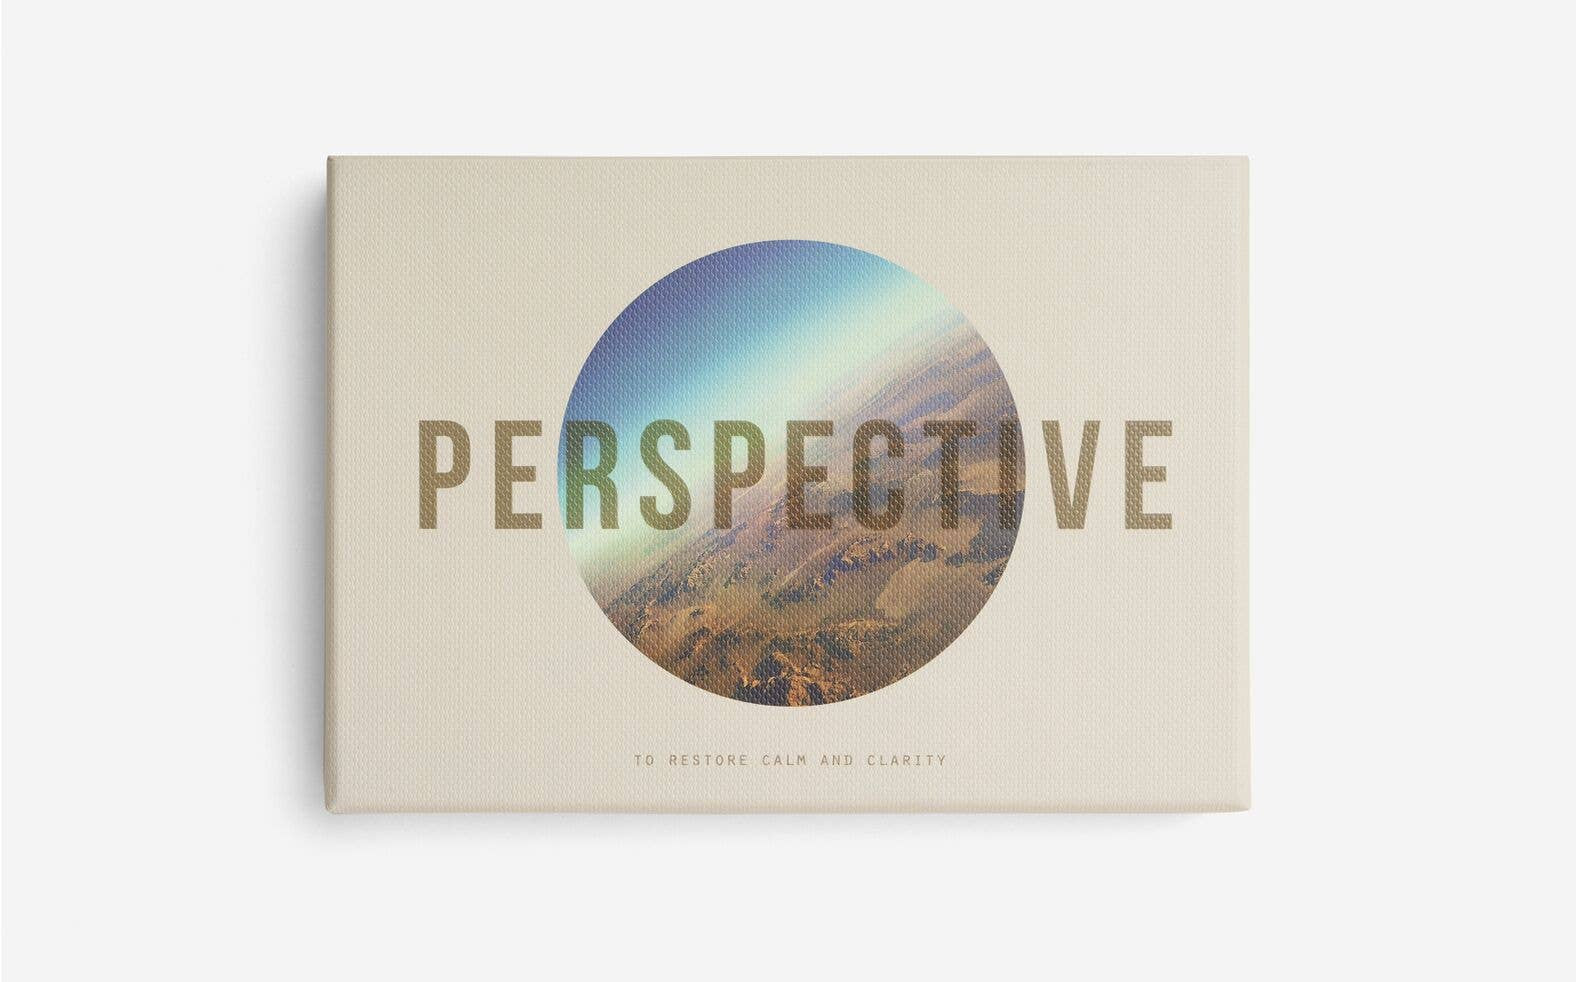 Cards For Perspective by The School of Life